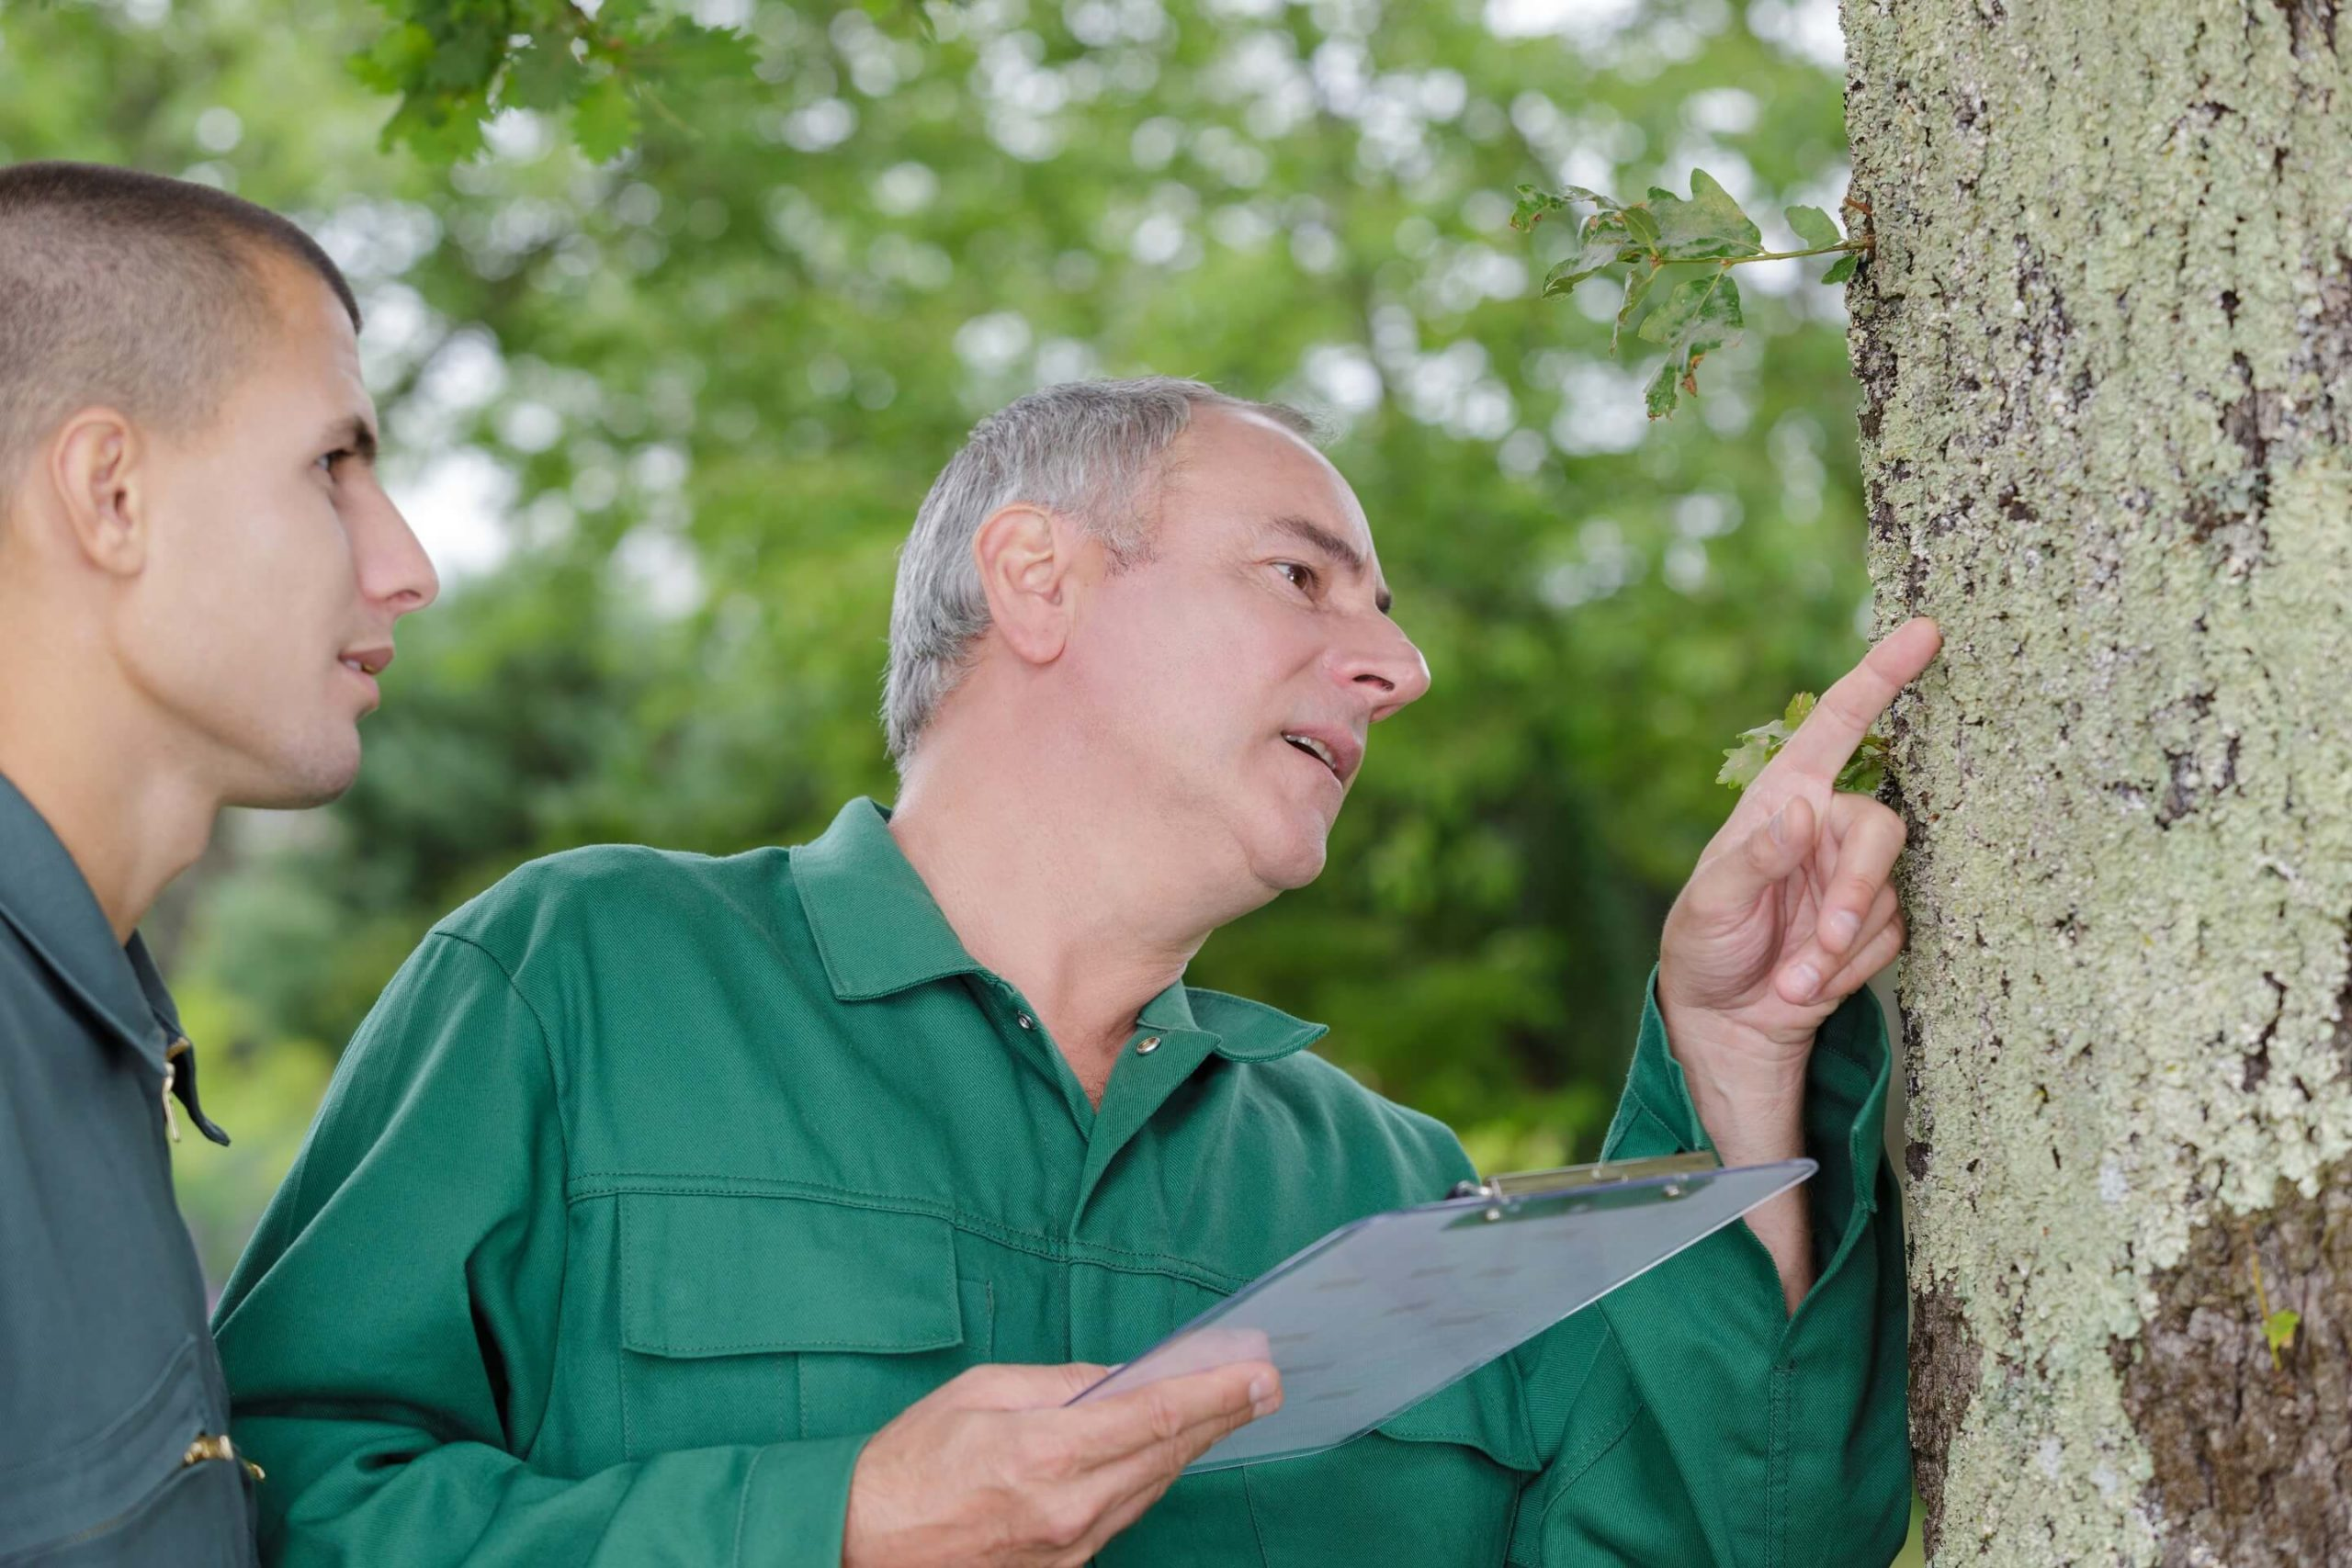 How Do You Know if a Tree is Diseased